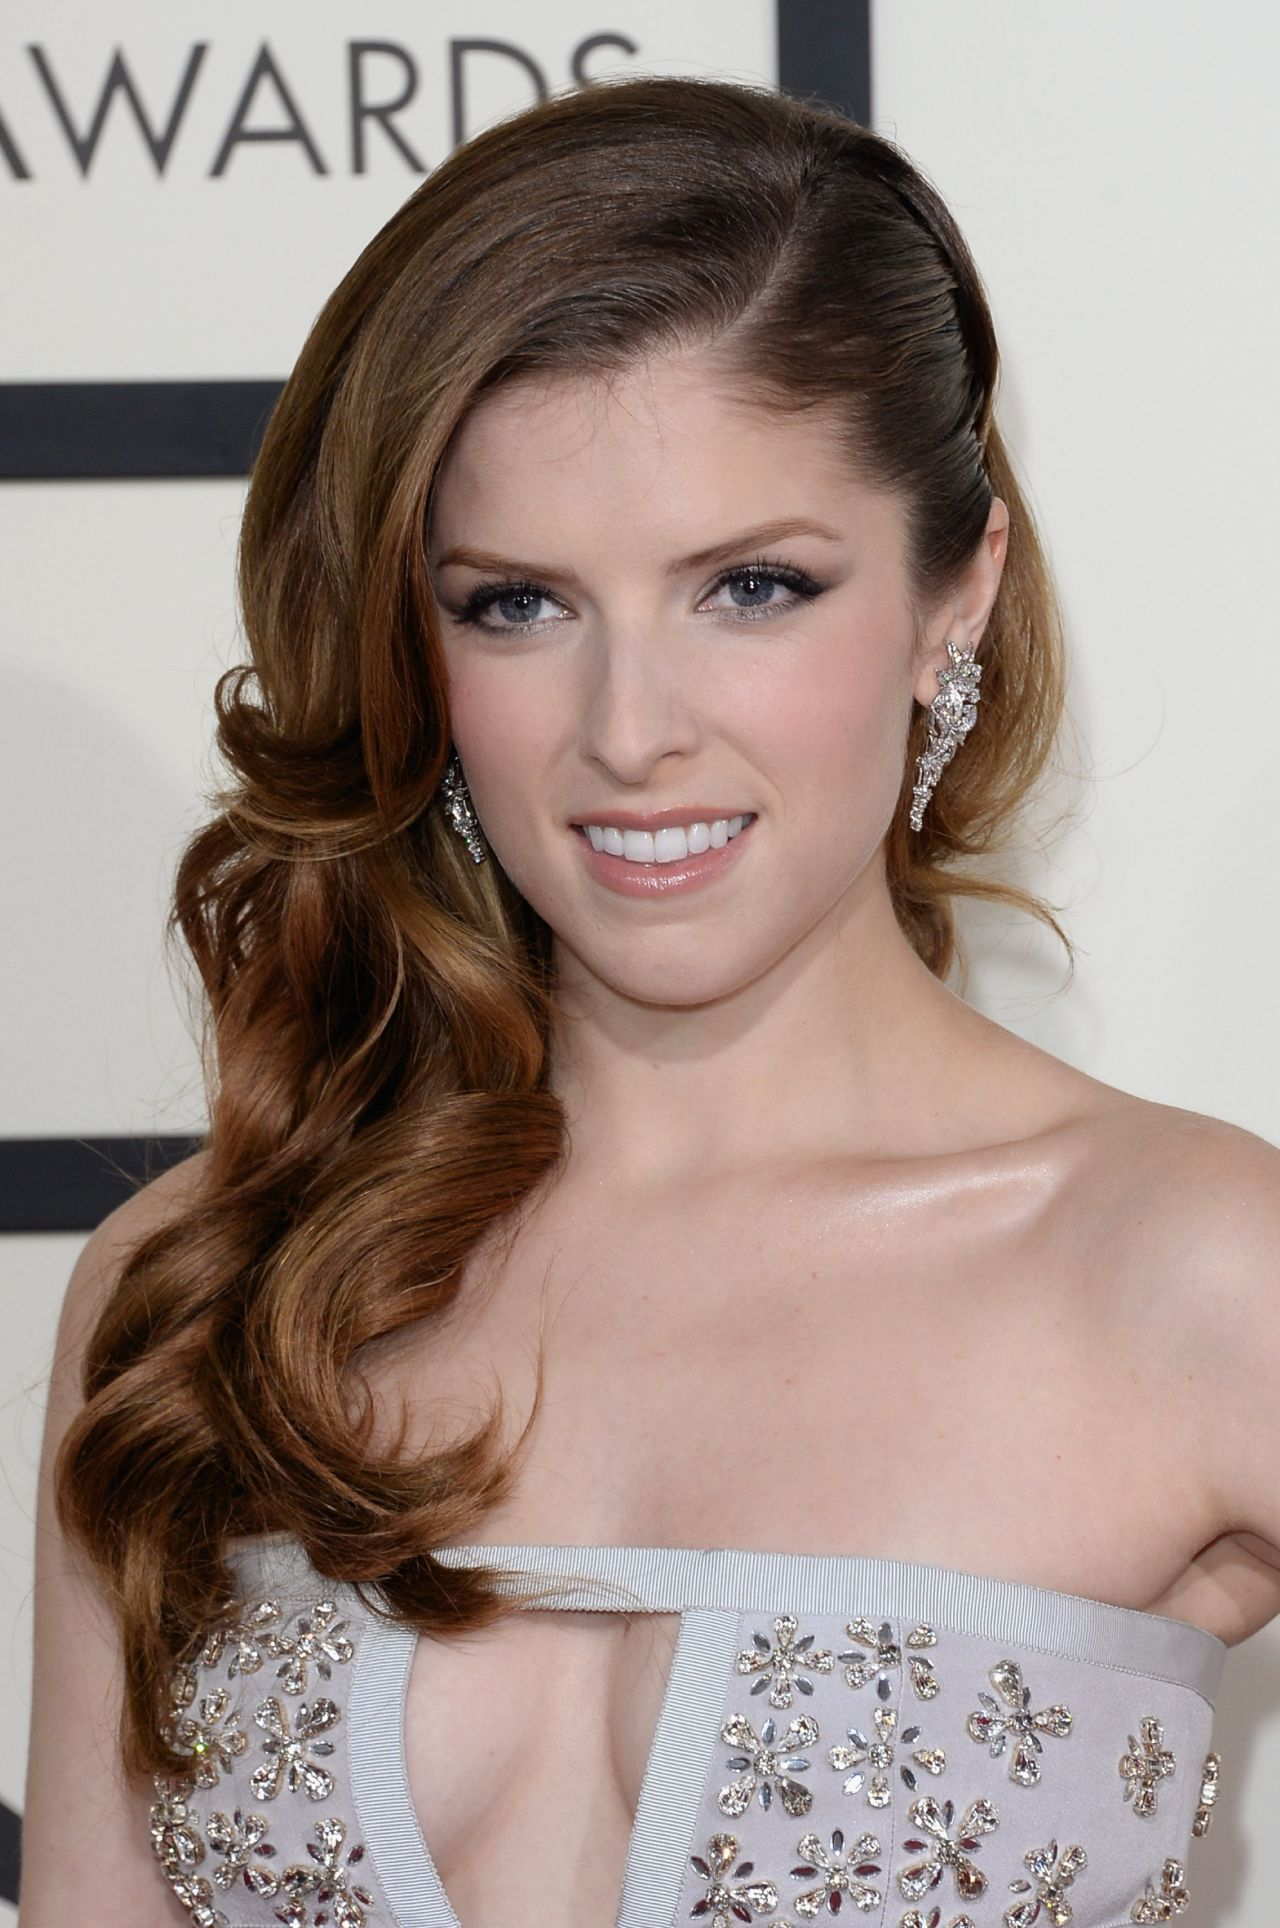 This image has been resized  Anna Kendrick